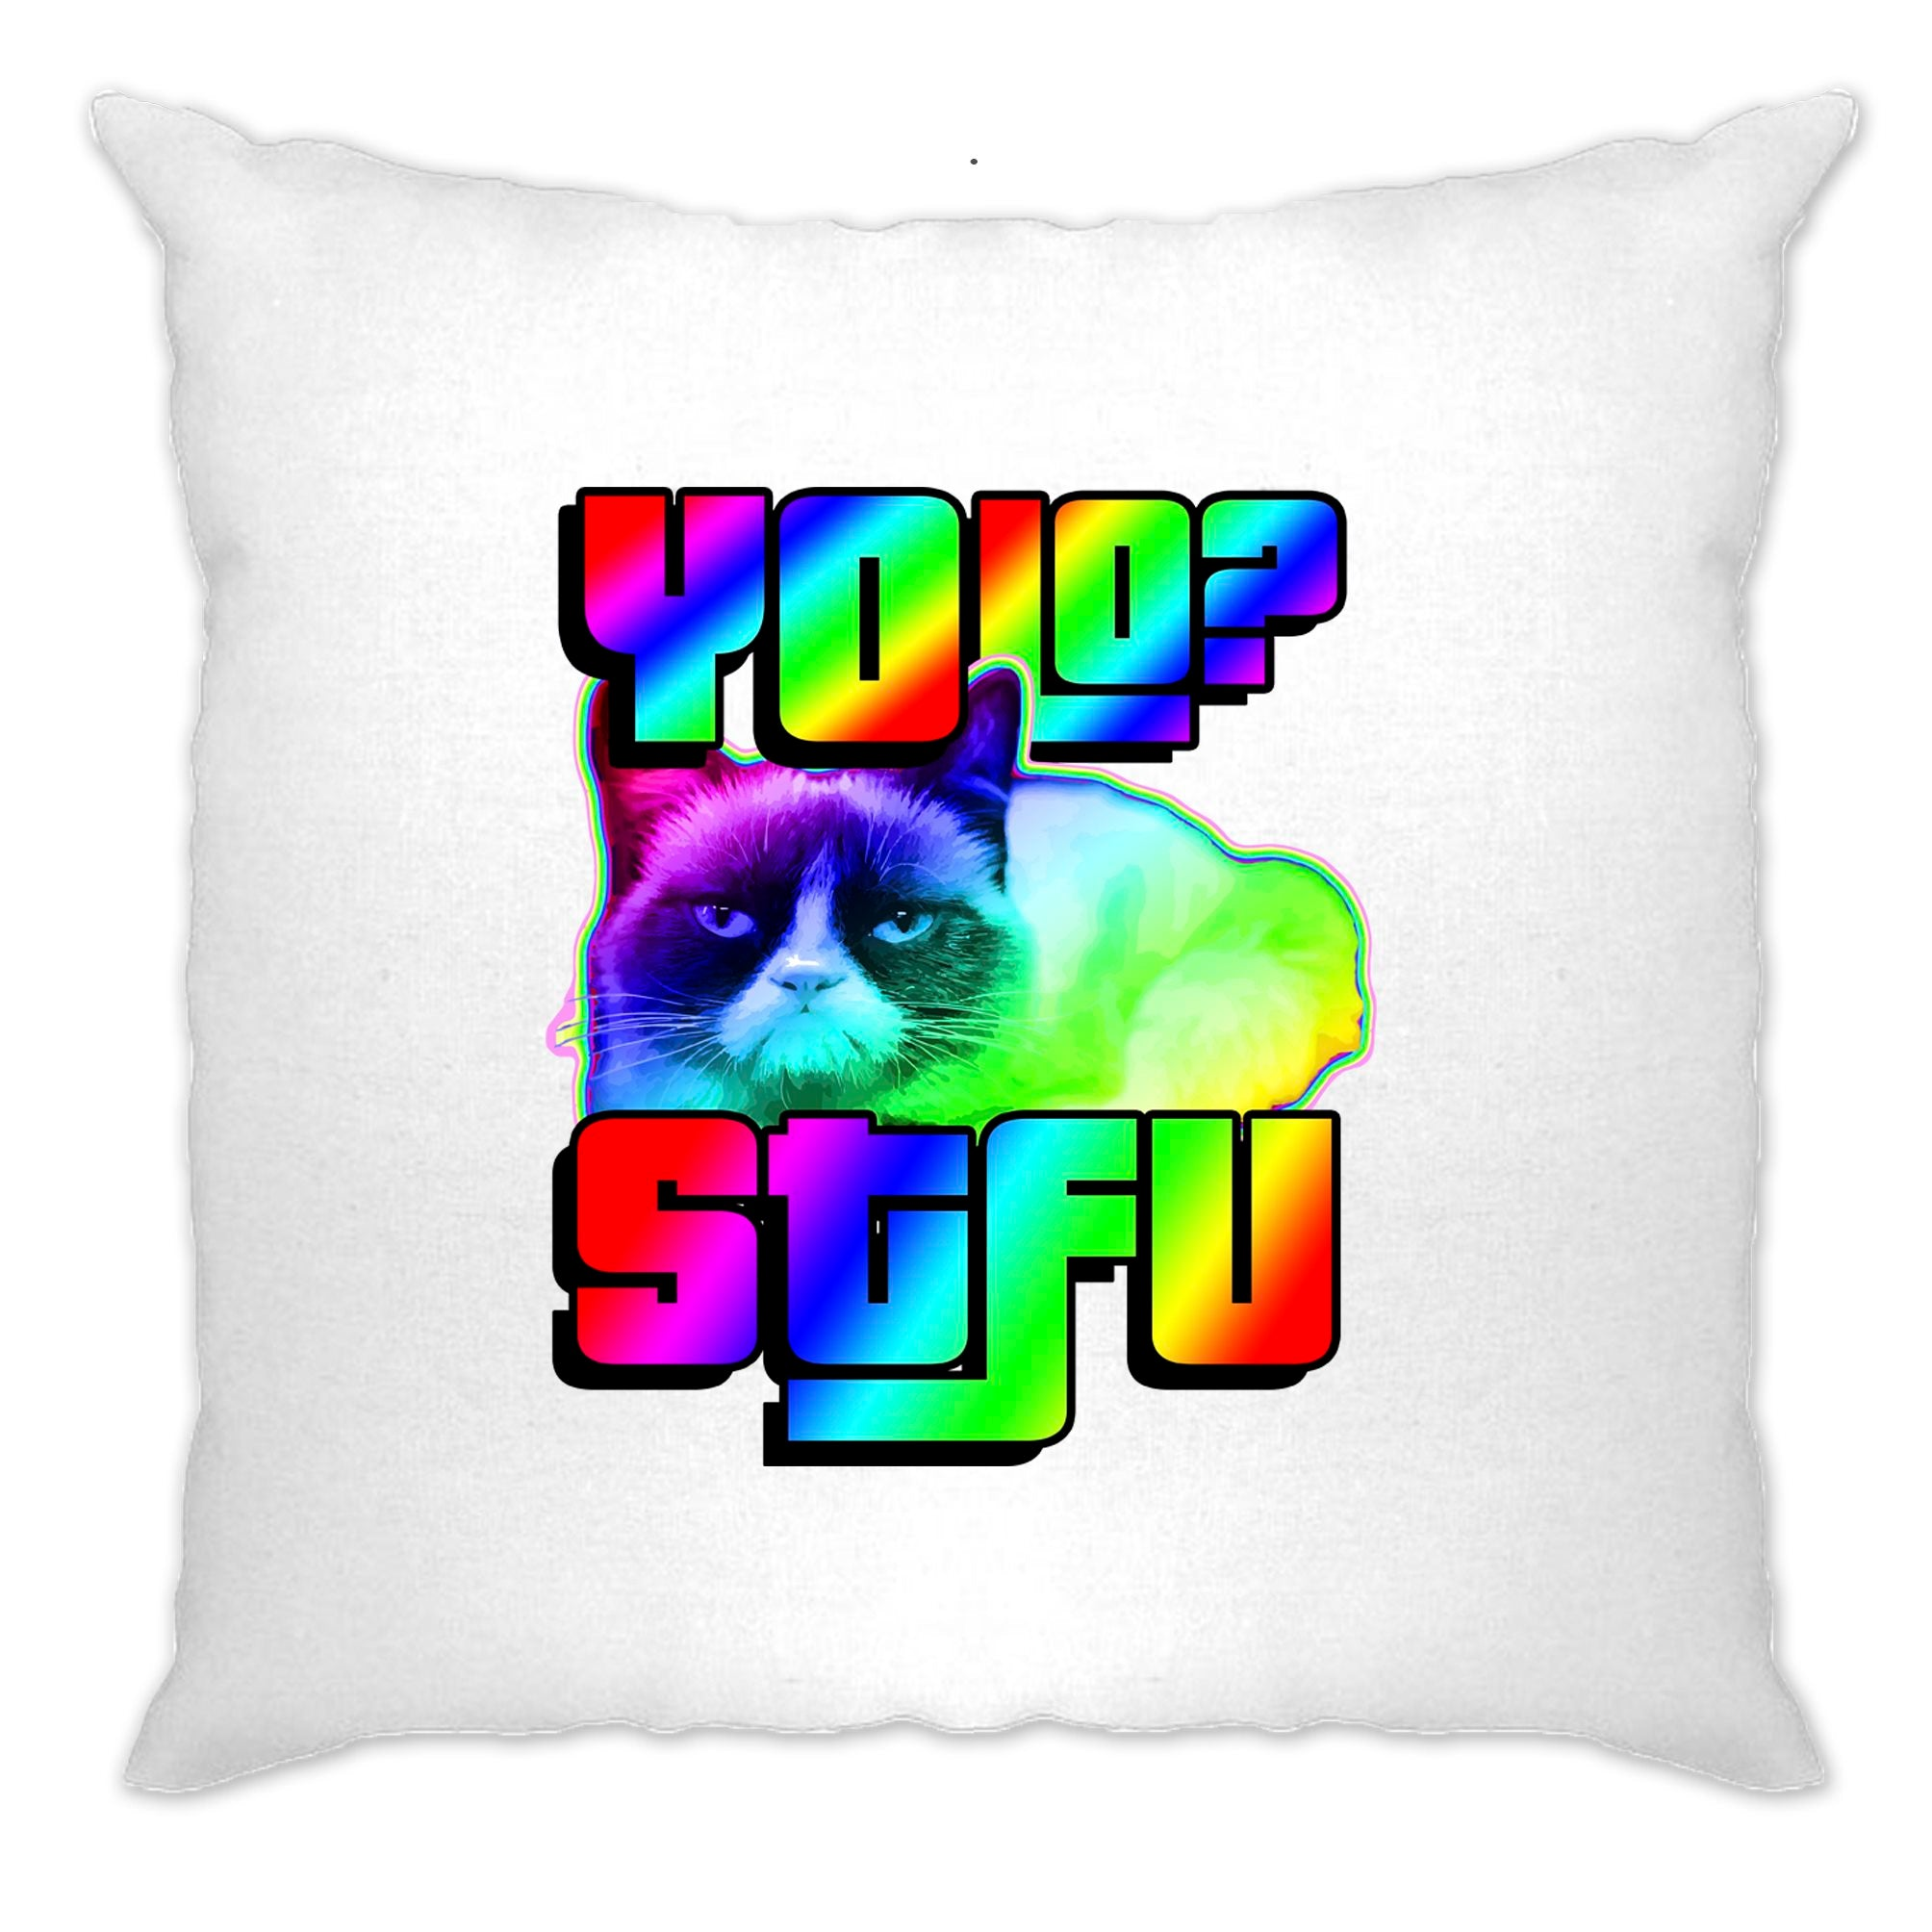 Funny Cushion Cover YOLO? - STFU Miserable Cat